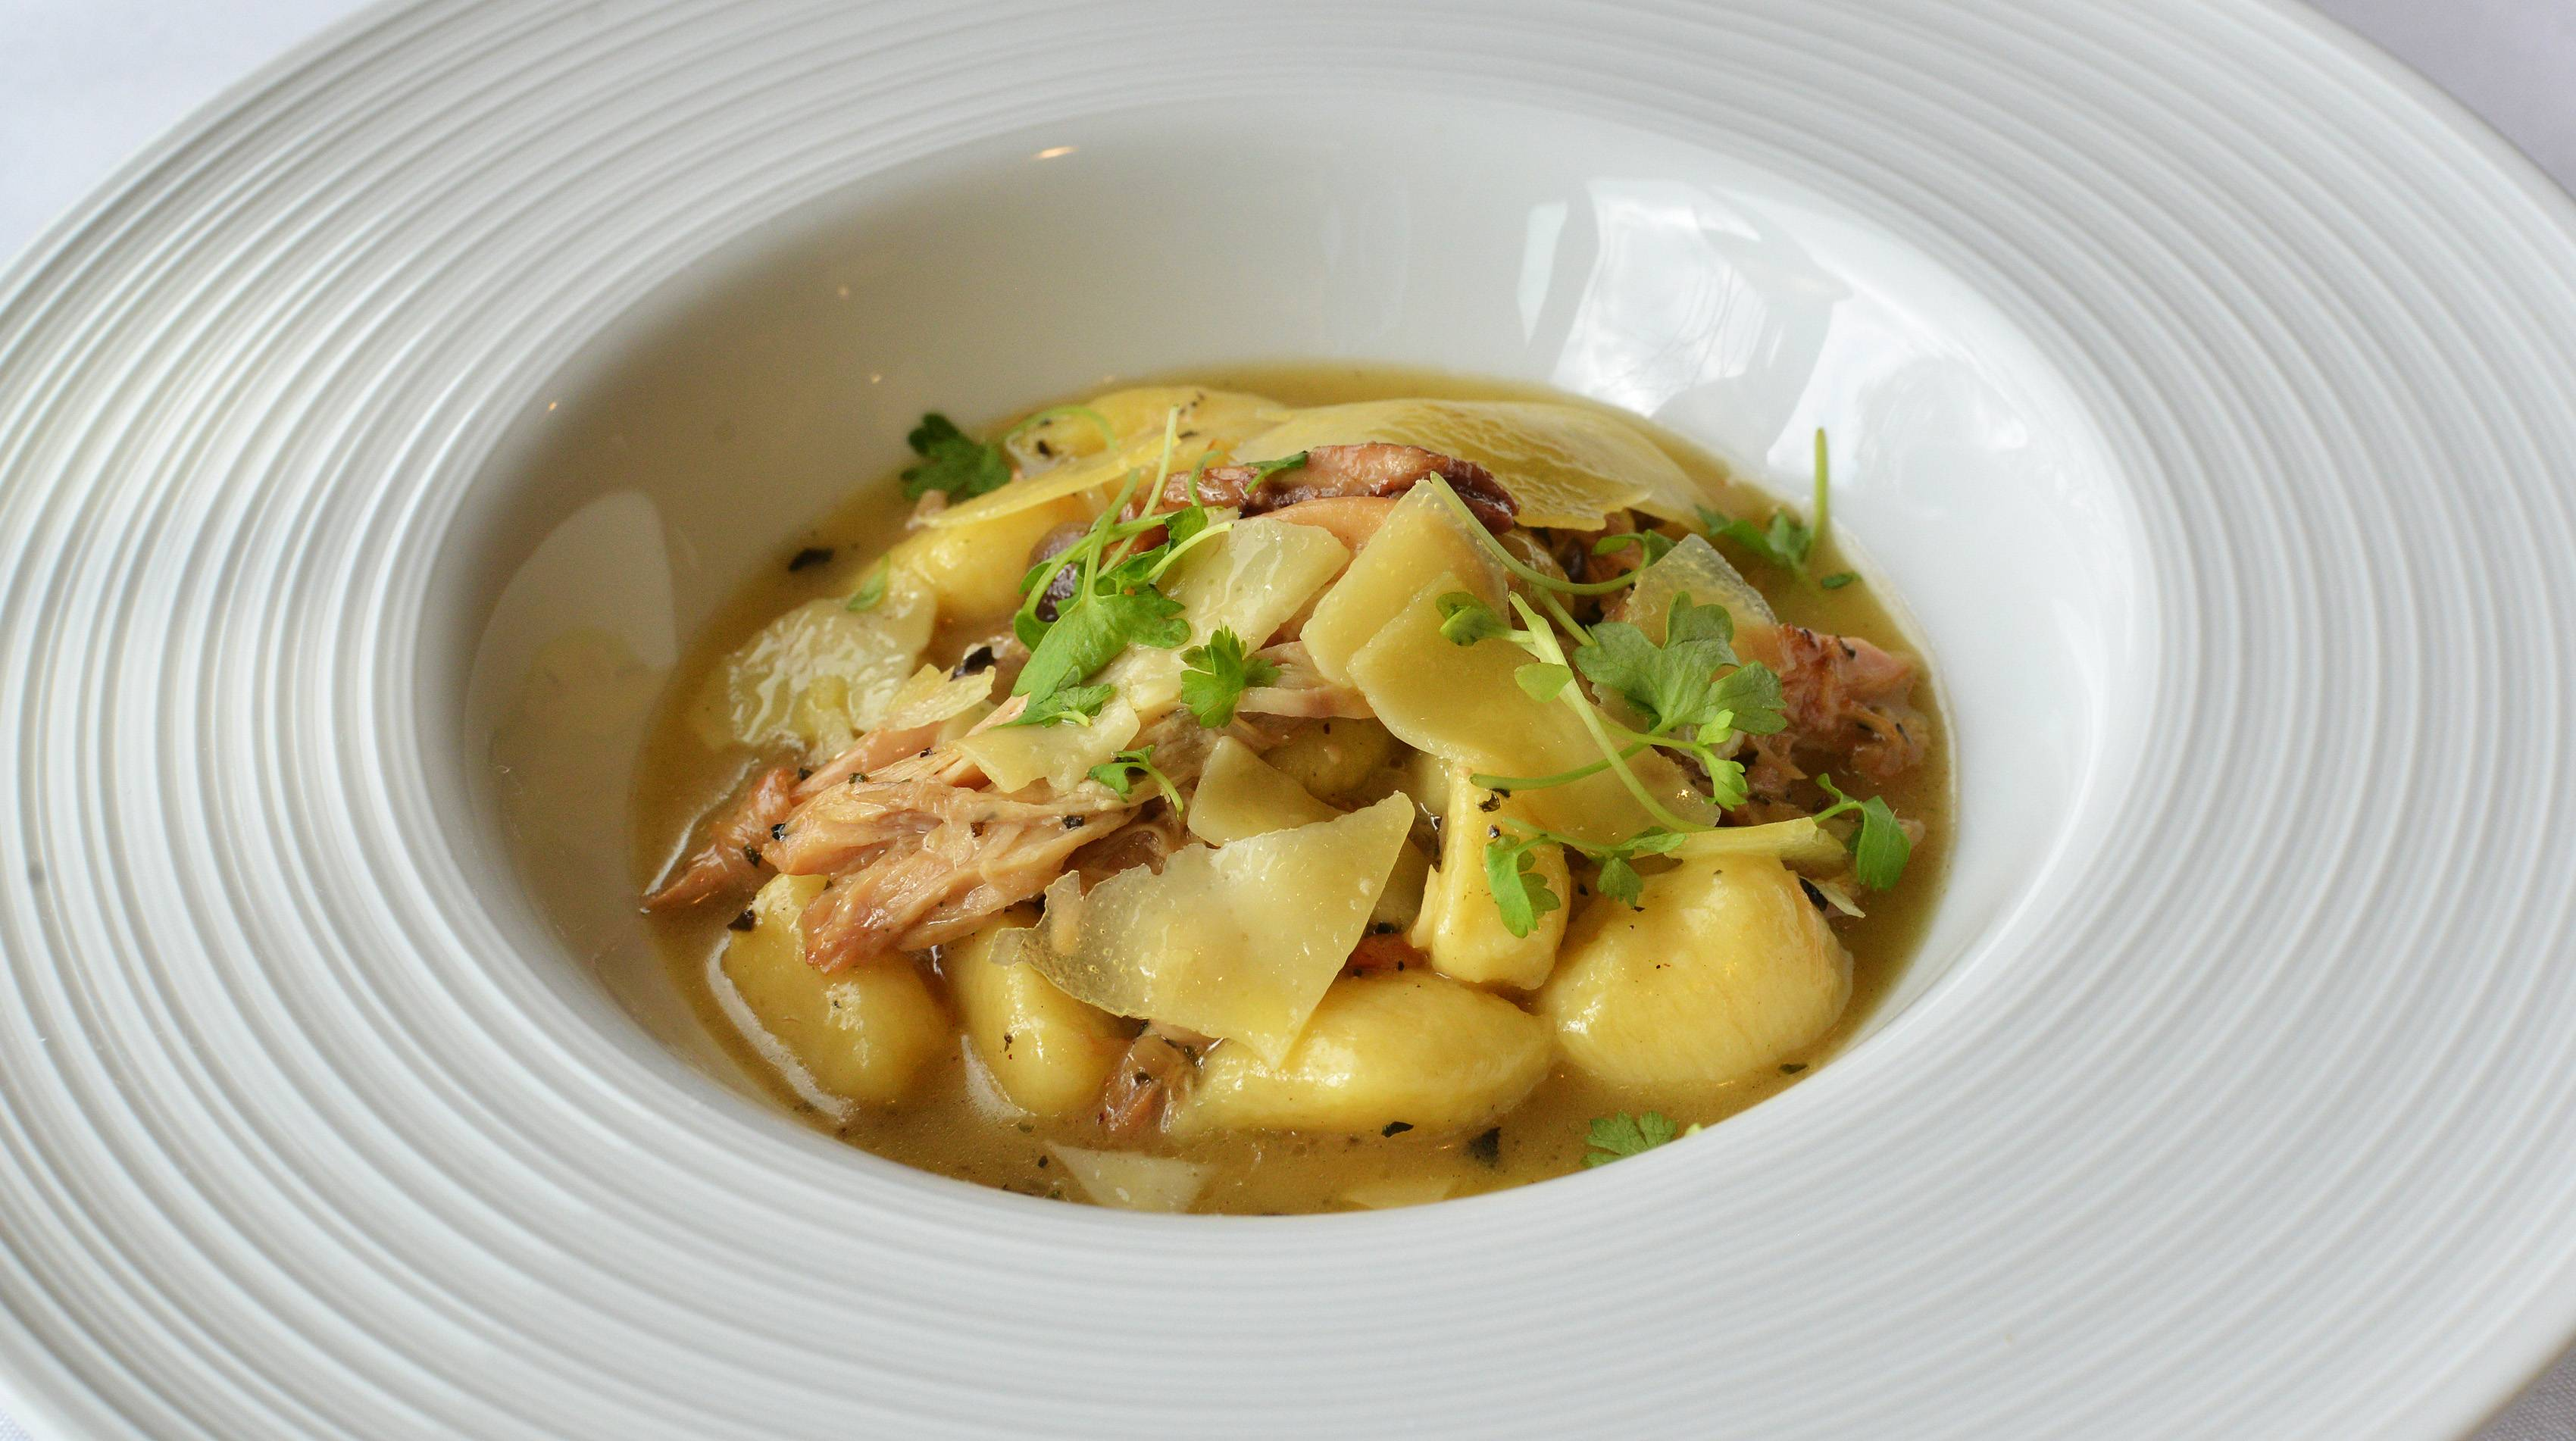 Waterleaf's unique global menu includes braised rabbit gnocchi, a dish not to be missed.